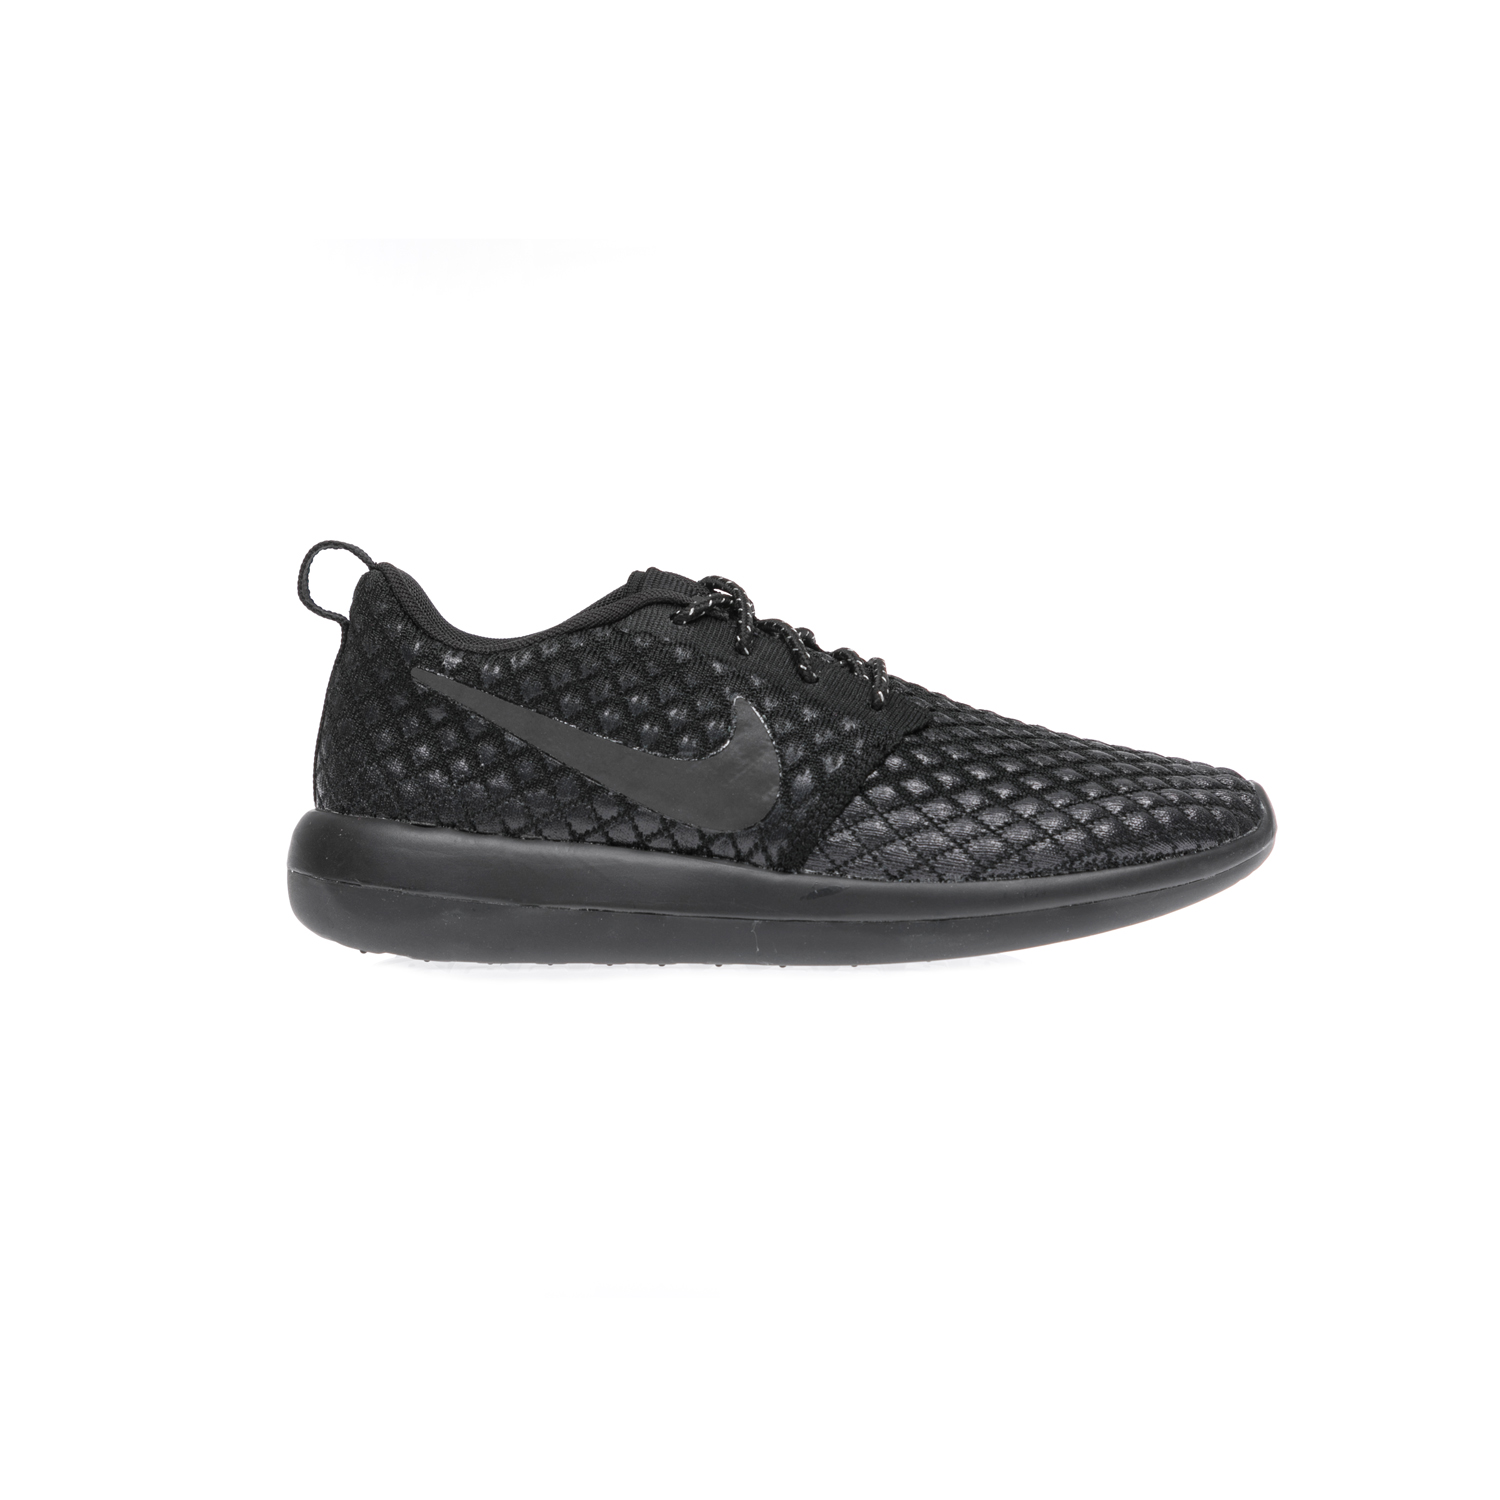 NIKE – Αντρικά αθλητικά παπούτσια NIKE ROSHE TWO FLYKNIT 365 μαύρα